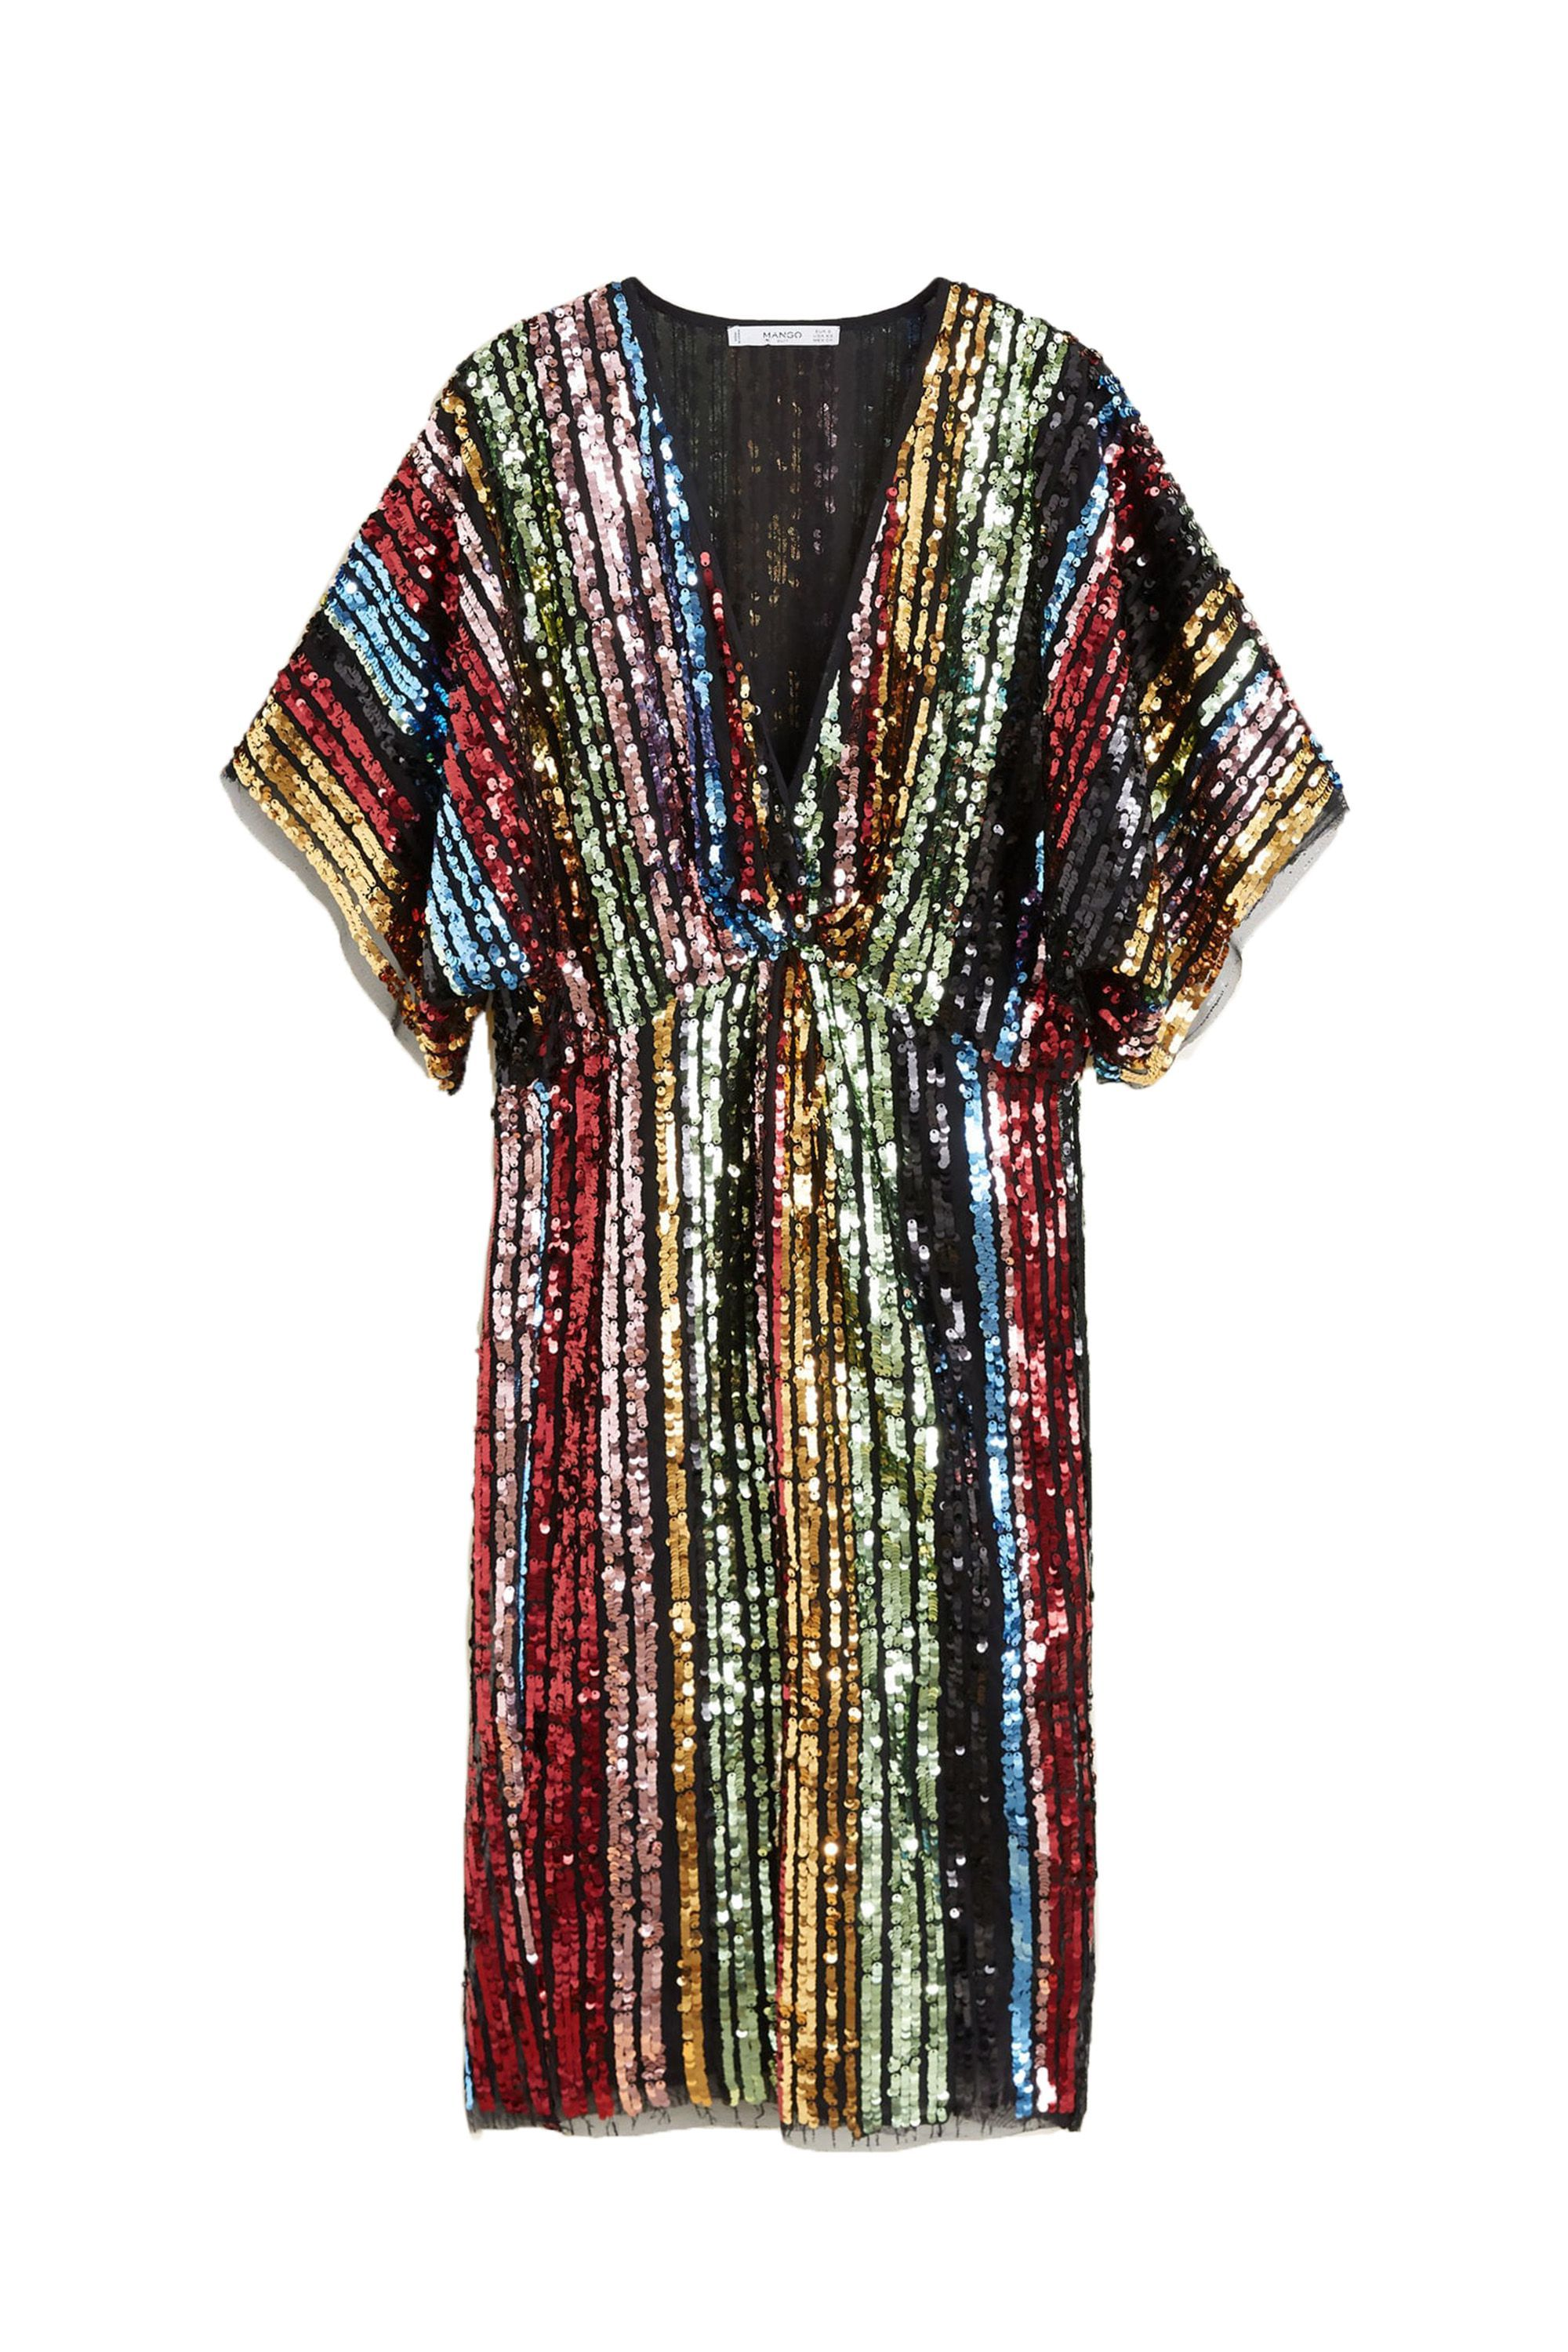 Sequined Gown Mango mango.com $59.99 SHOP NOW Rainbow sequins are always a good idea.